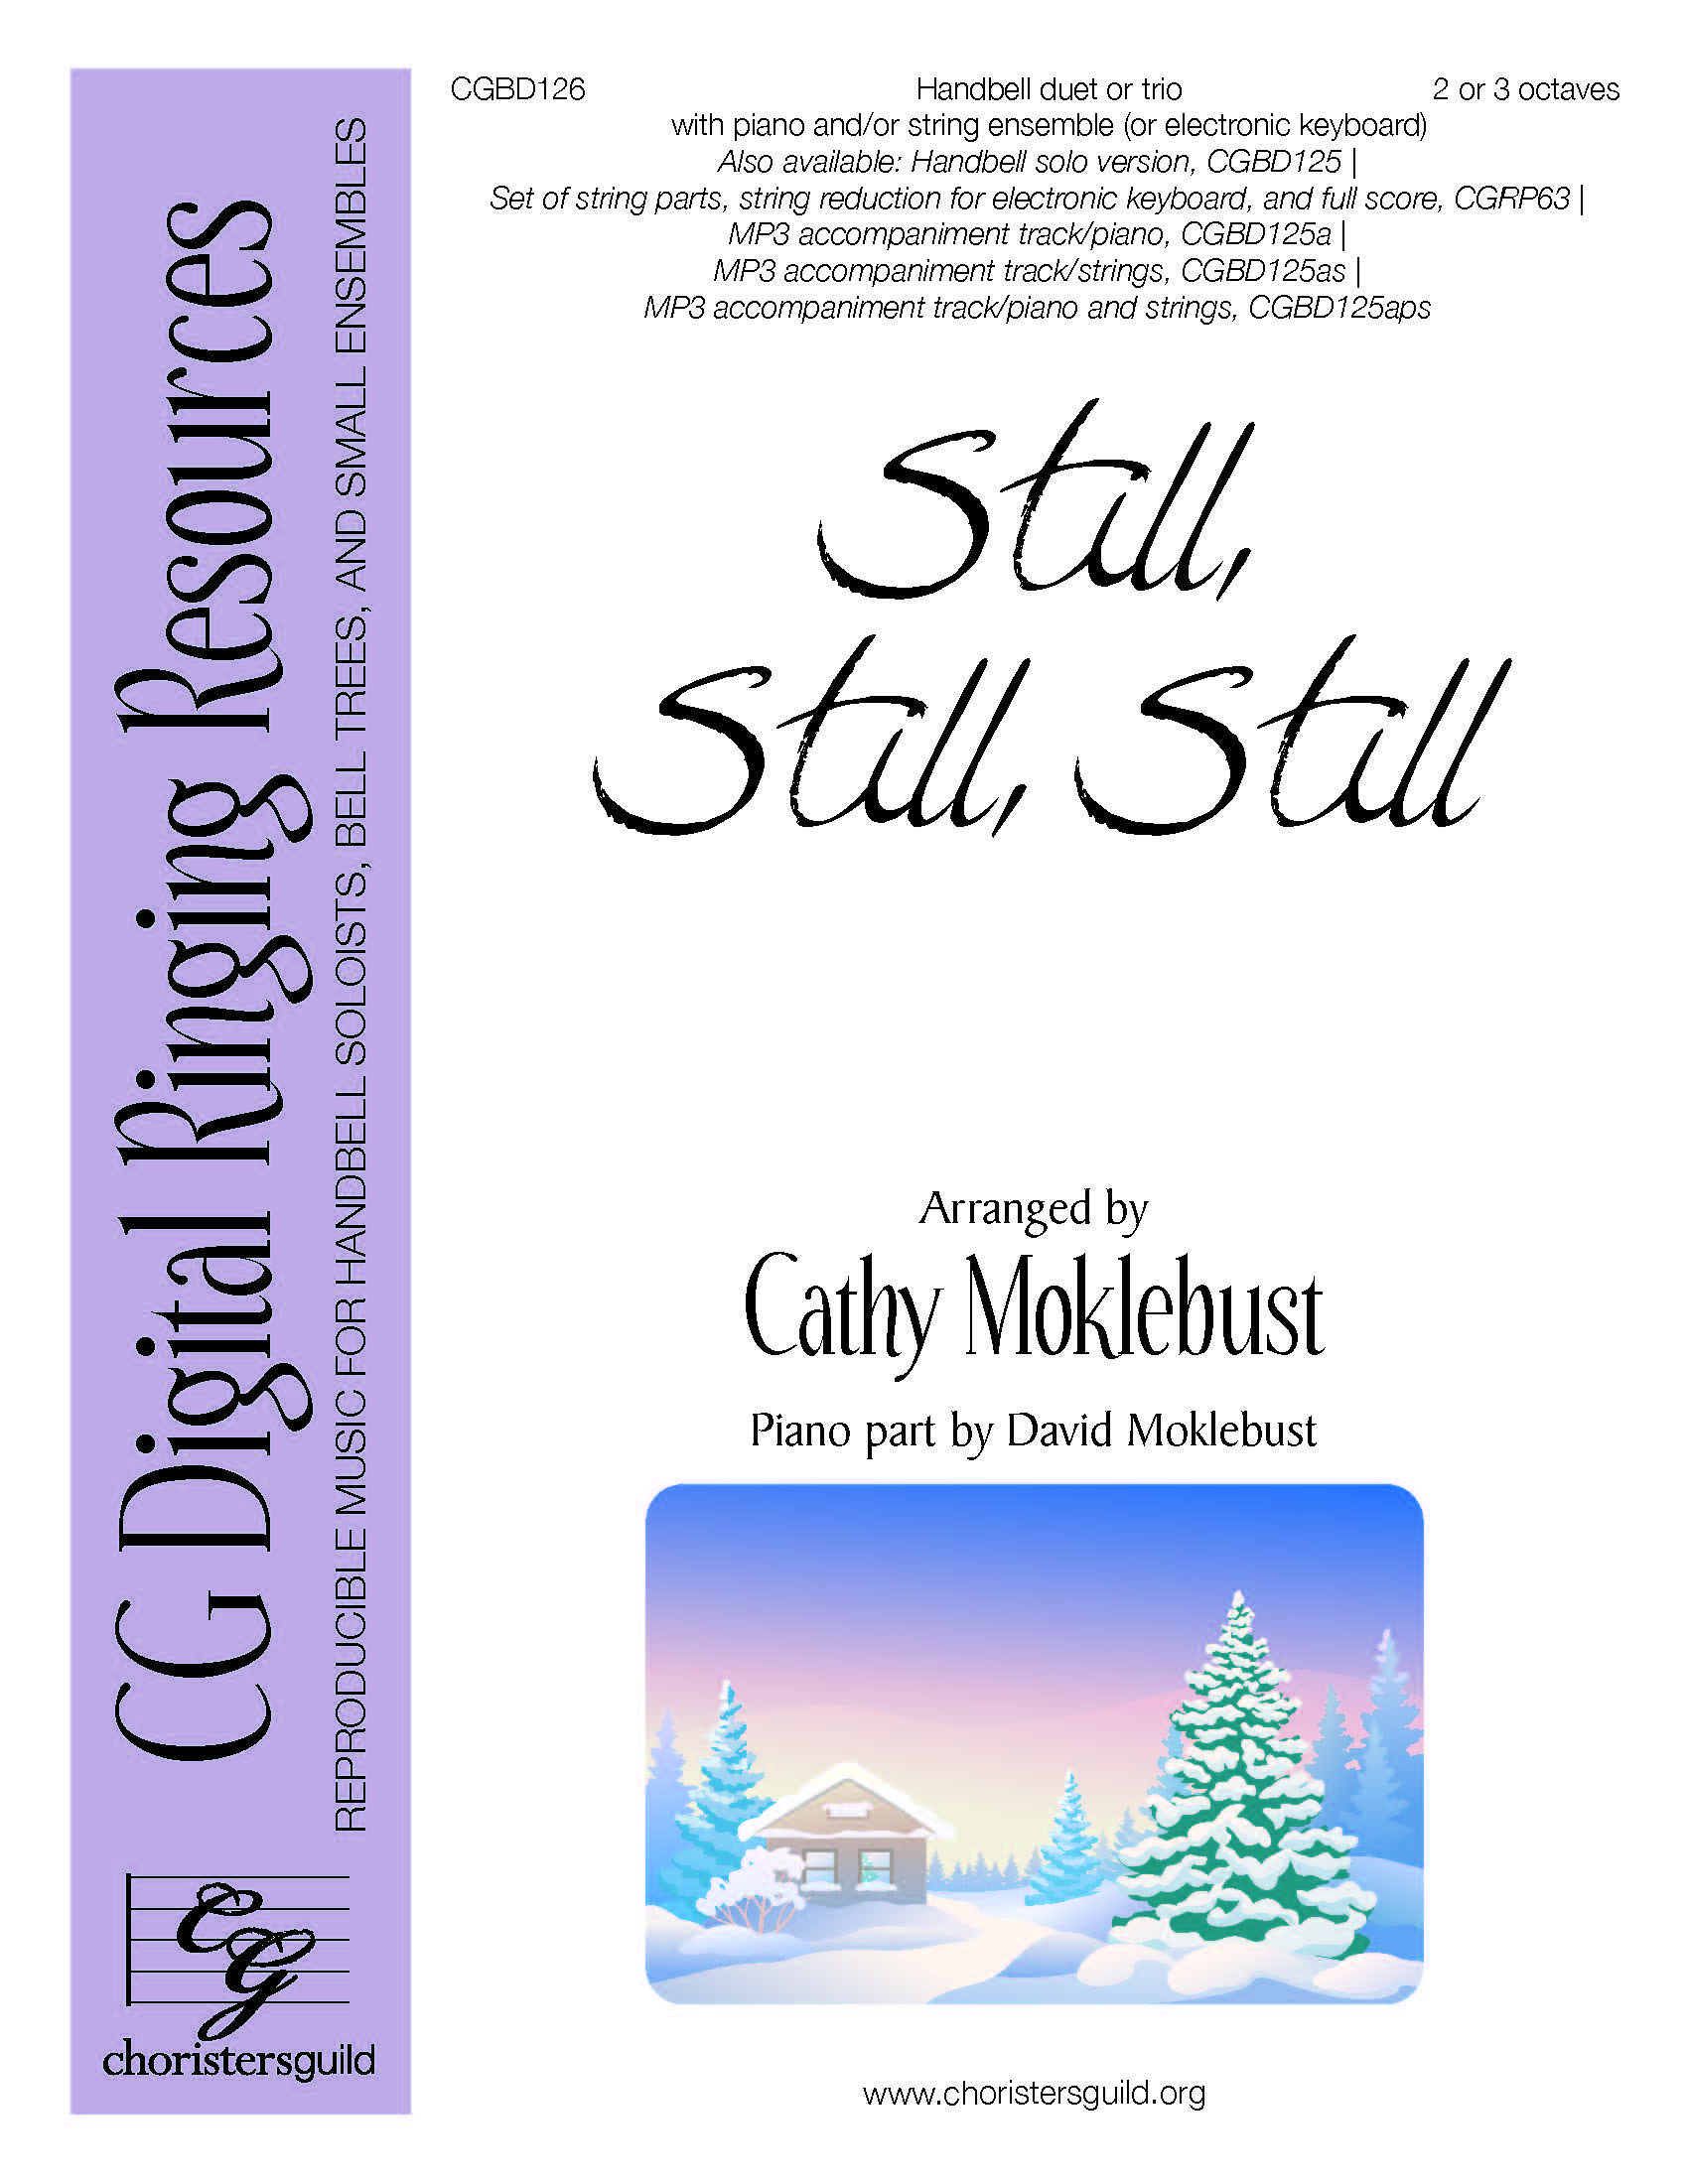 Still, Still, Still (reproducible) - Duet or Trio